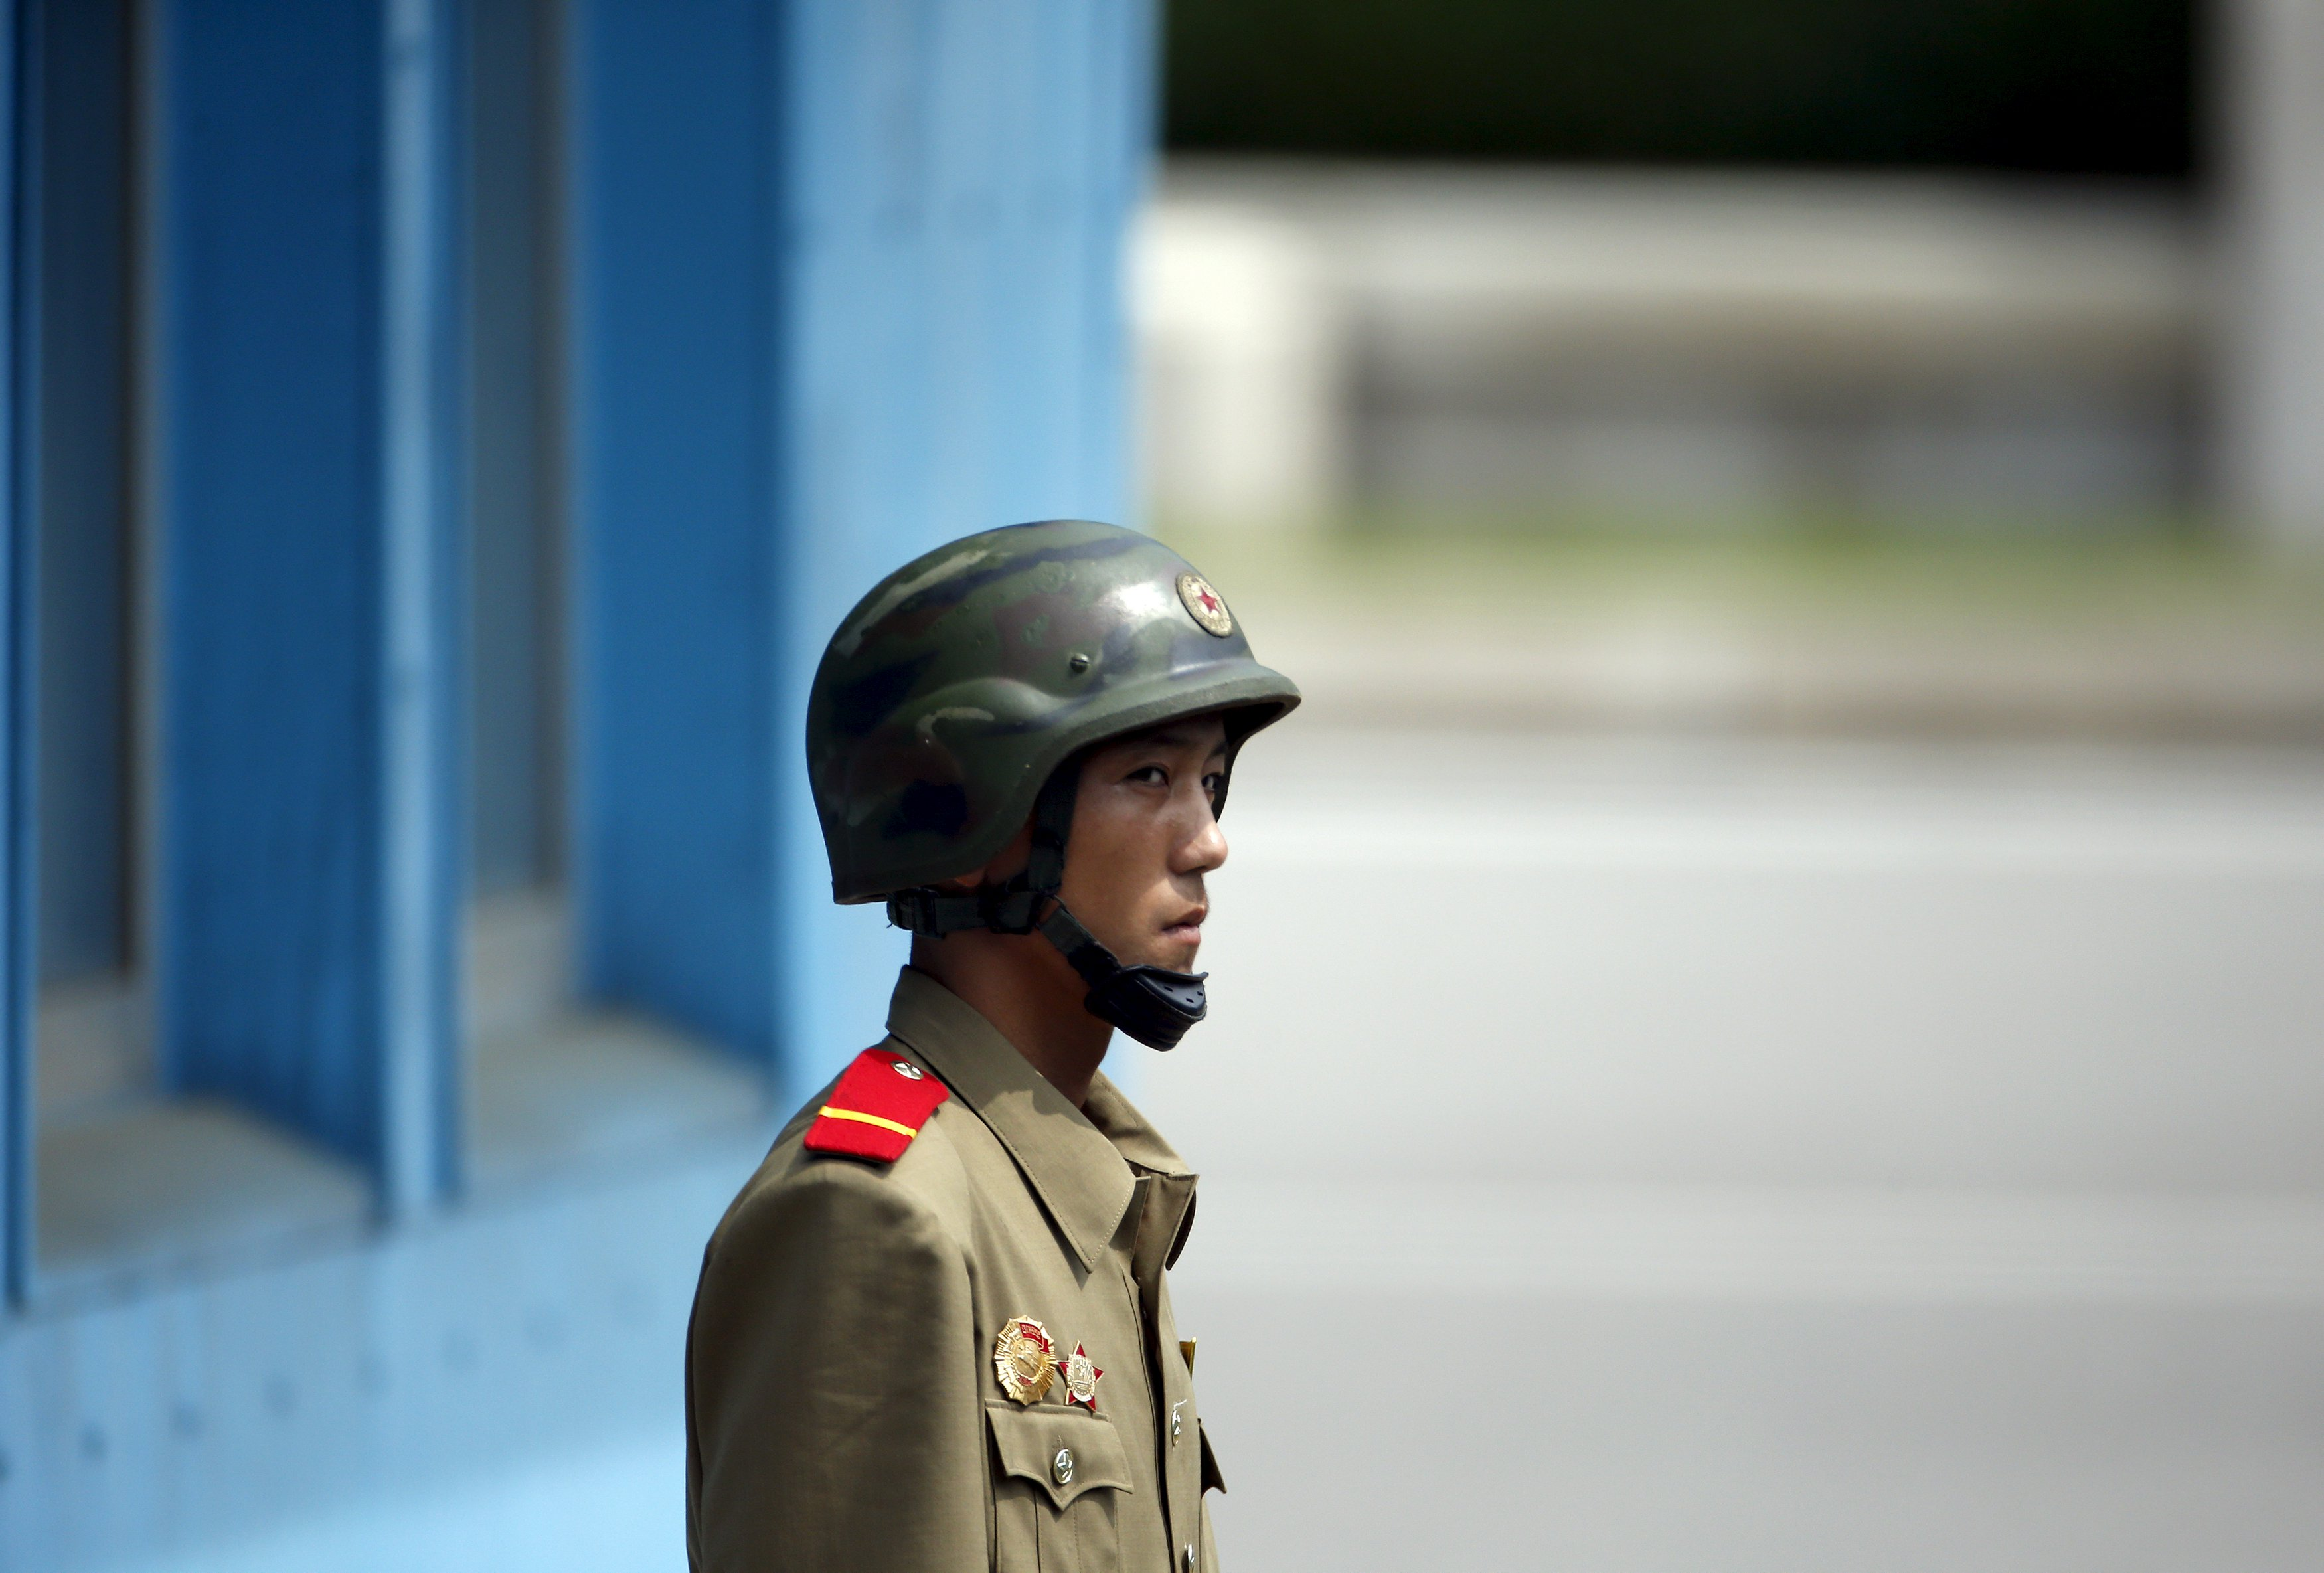 A North Korean soldier keeps watch on the south at the truce village of Panmunjom in the demilitarised zone (DMZ) separating the two Koreas, South Korea, August 11, 2015. South Korea's military on Monday threatened retaliation against North Korea after accusing the North of planting land mines inside the Demilitarised Zone border that wounded two soldiers last week, in what it called a cowardly act of provocation.